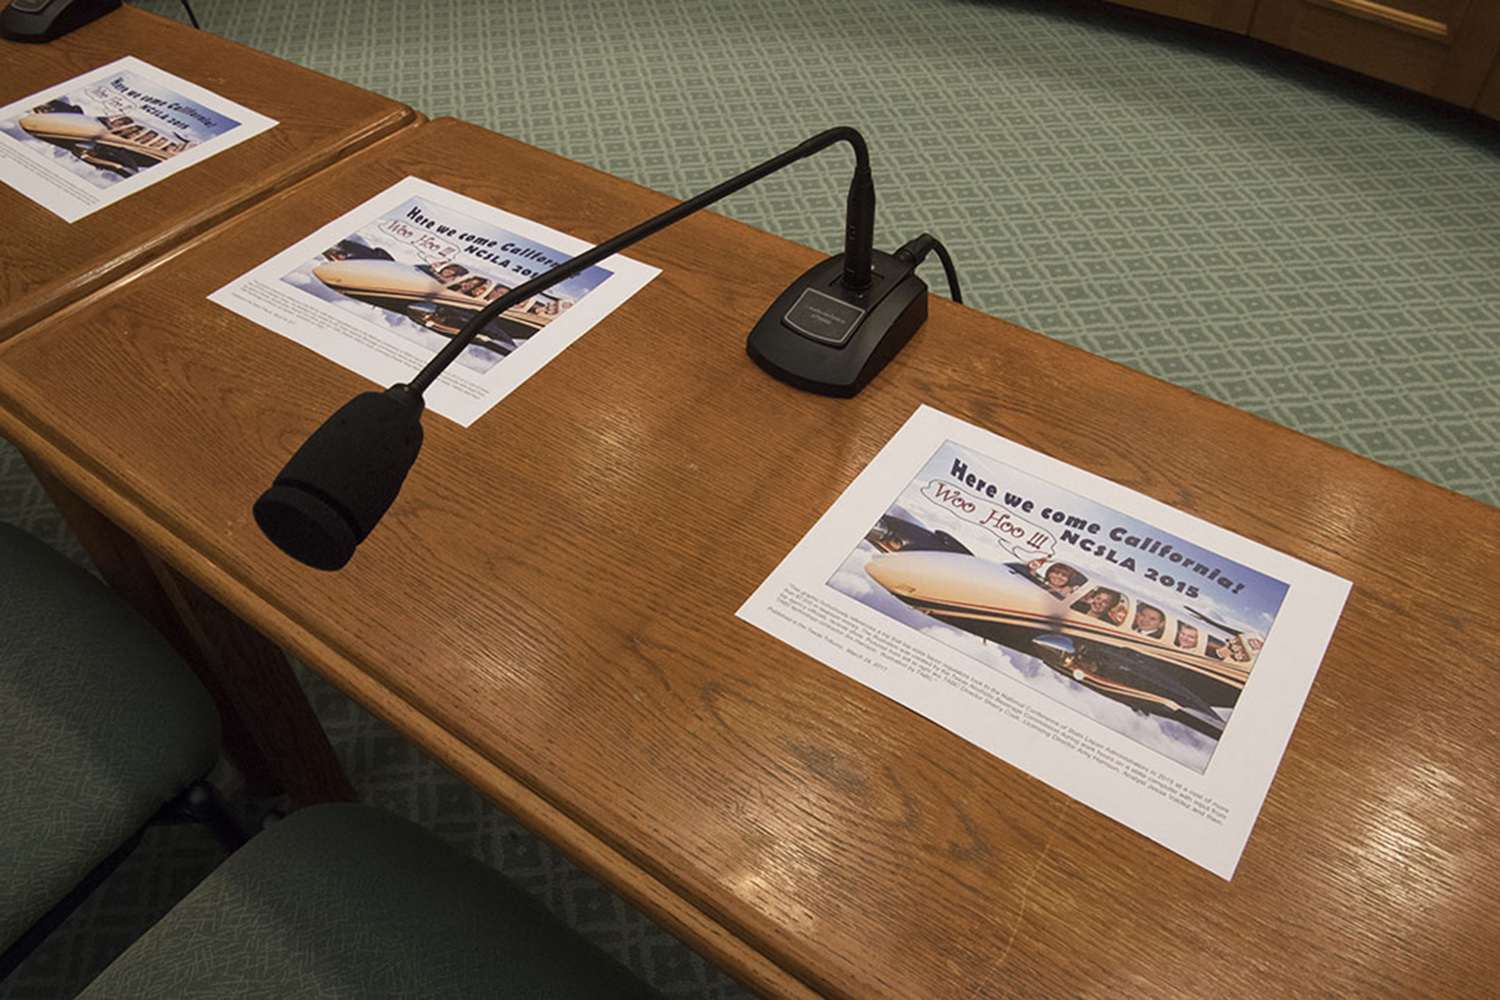 Copies of a flier created internally at the Texas Alcoholic Beverage Commission laid out at the witness table ahead of a hearing held by the House General Investigating & Ethics Committee on April 13, 2017.